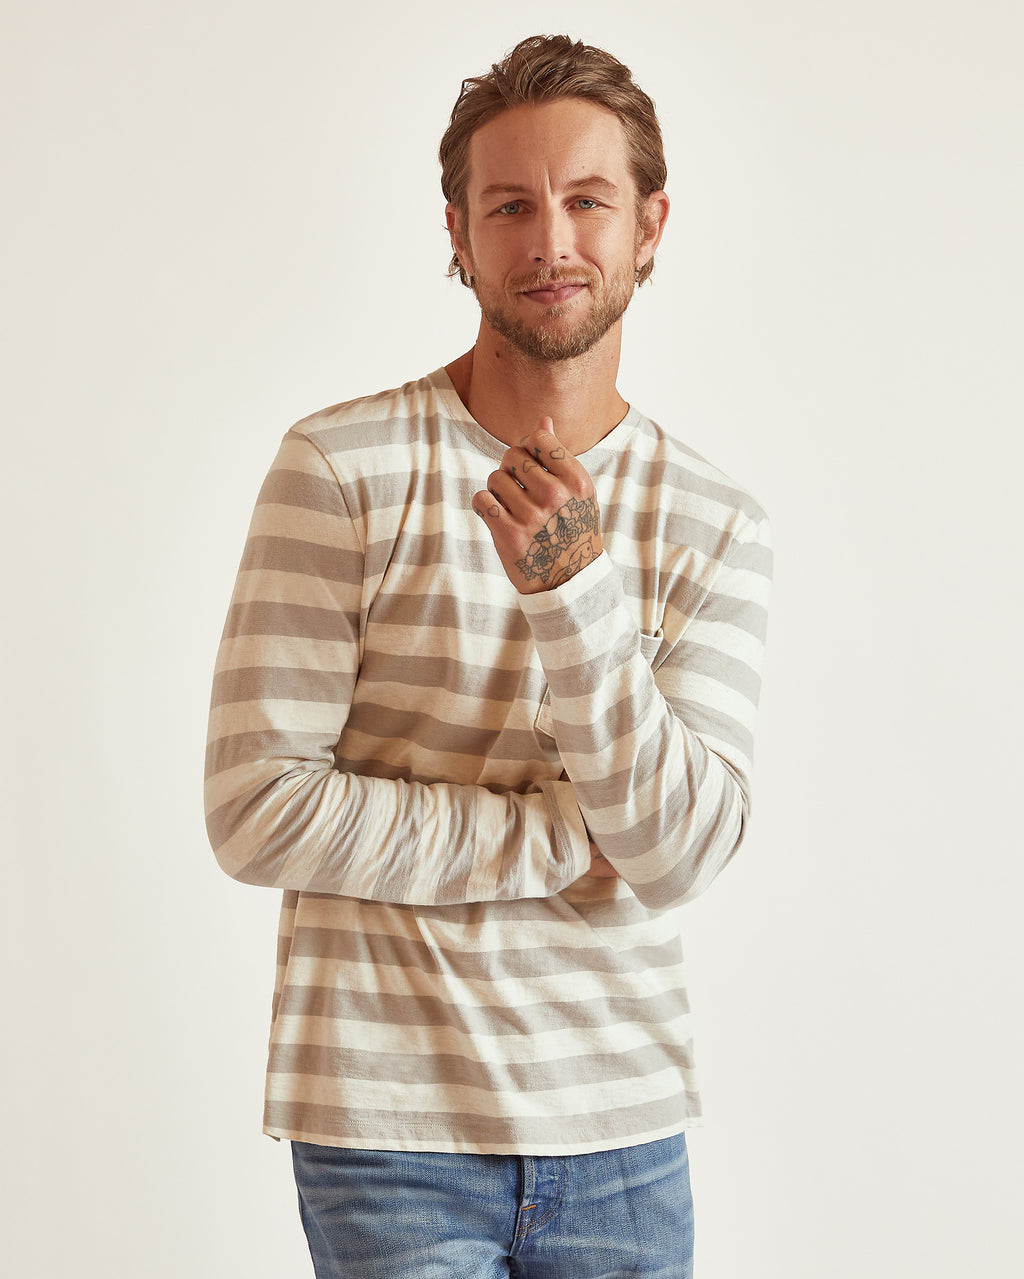 The Ayden Long Sleeve Tee in Light Grey Stripe